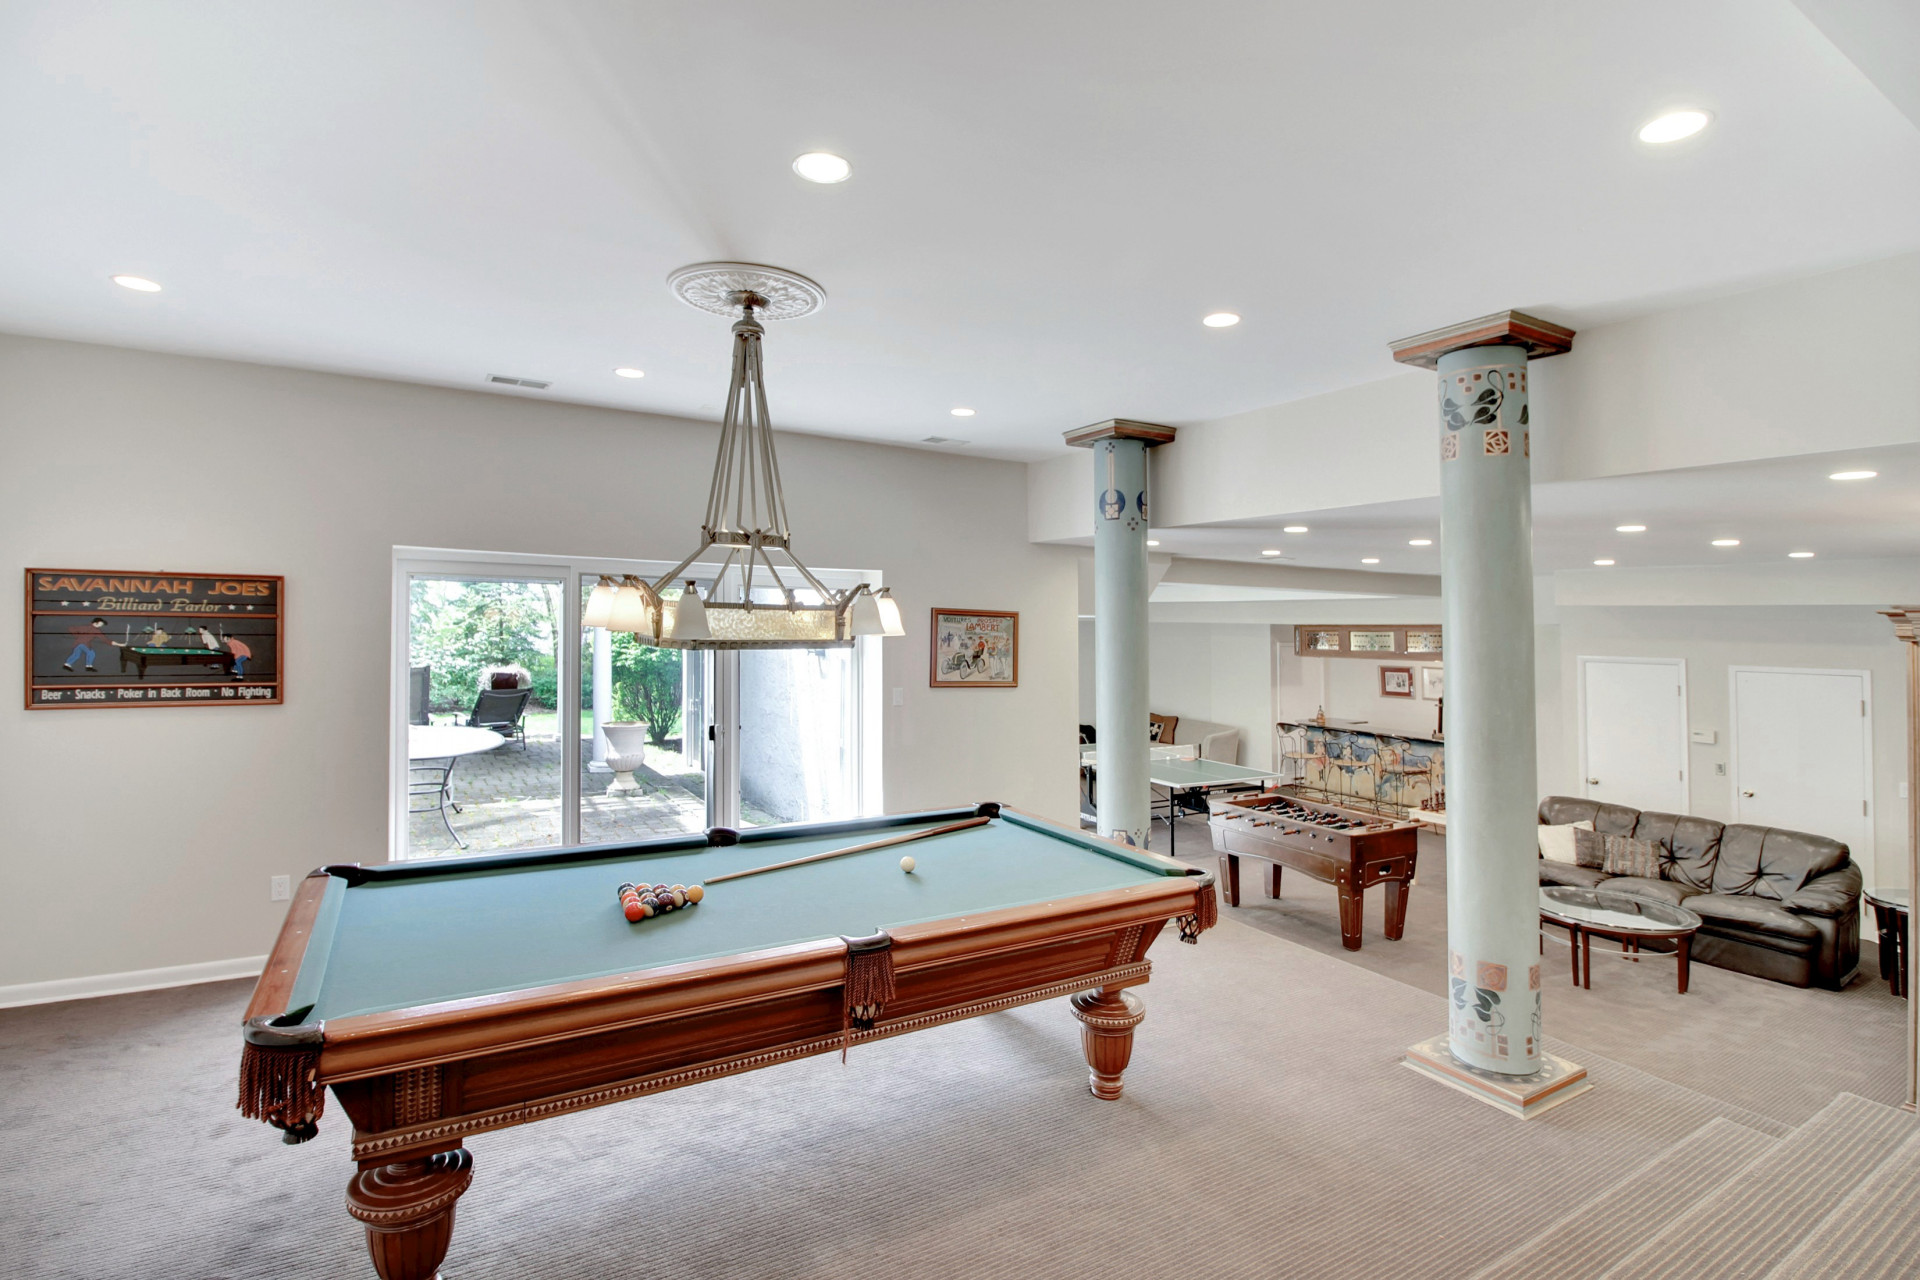 84 Shrewsbury Drive Game Room